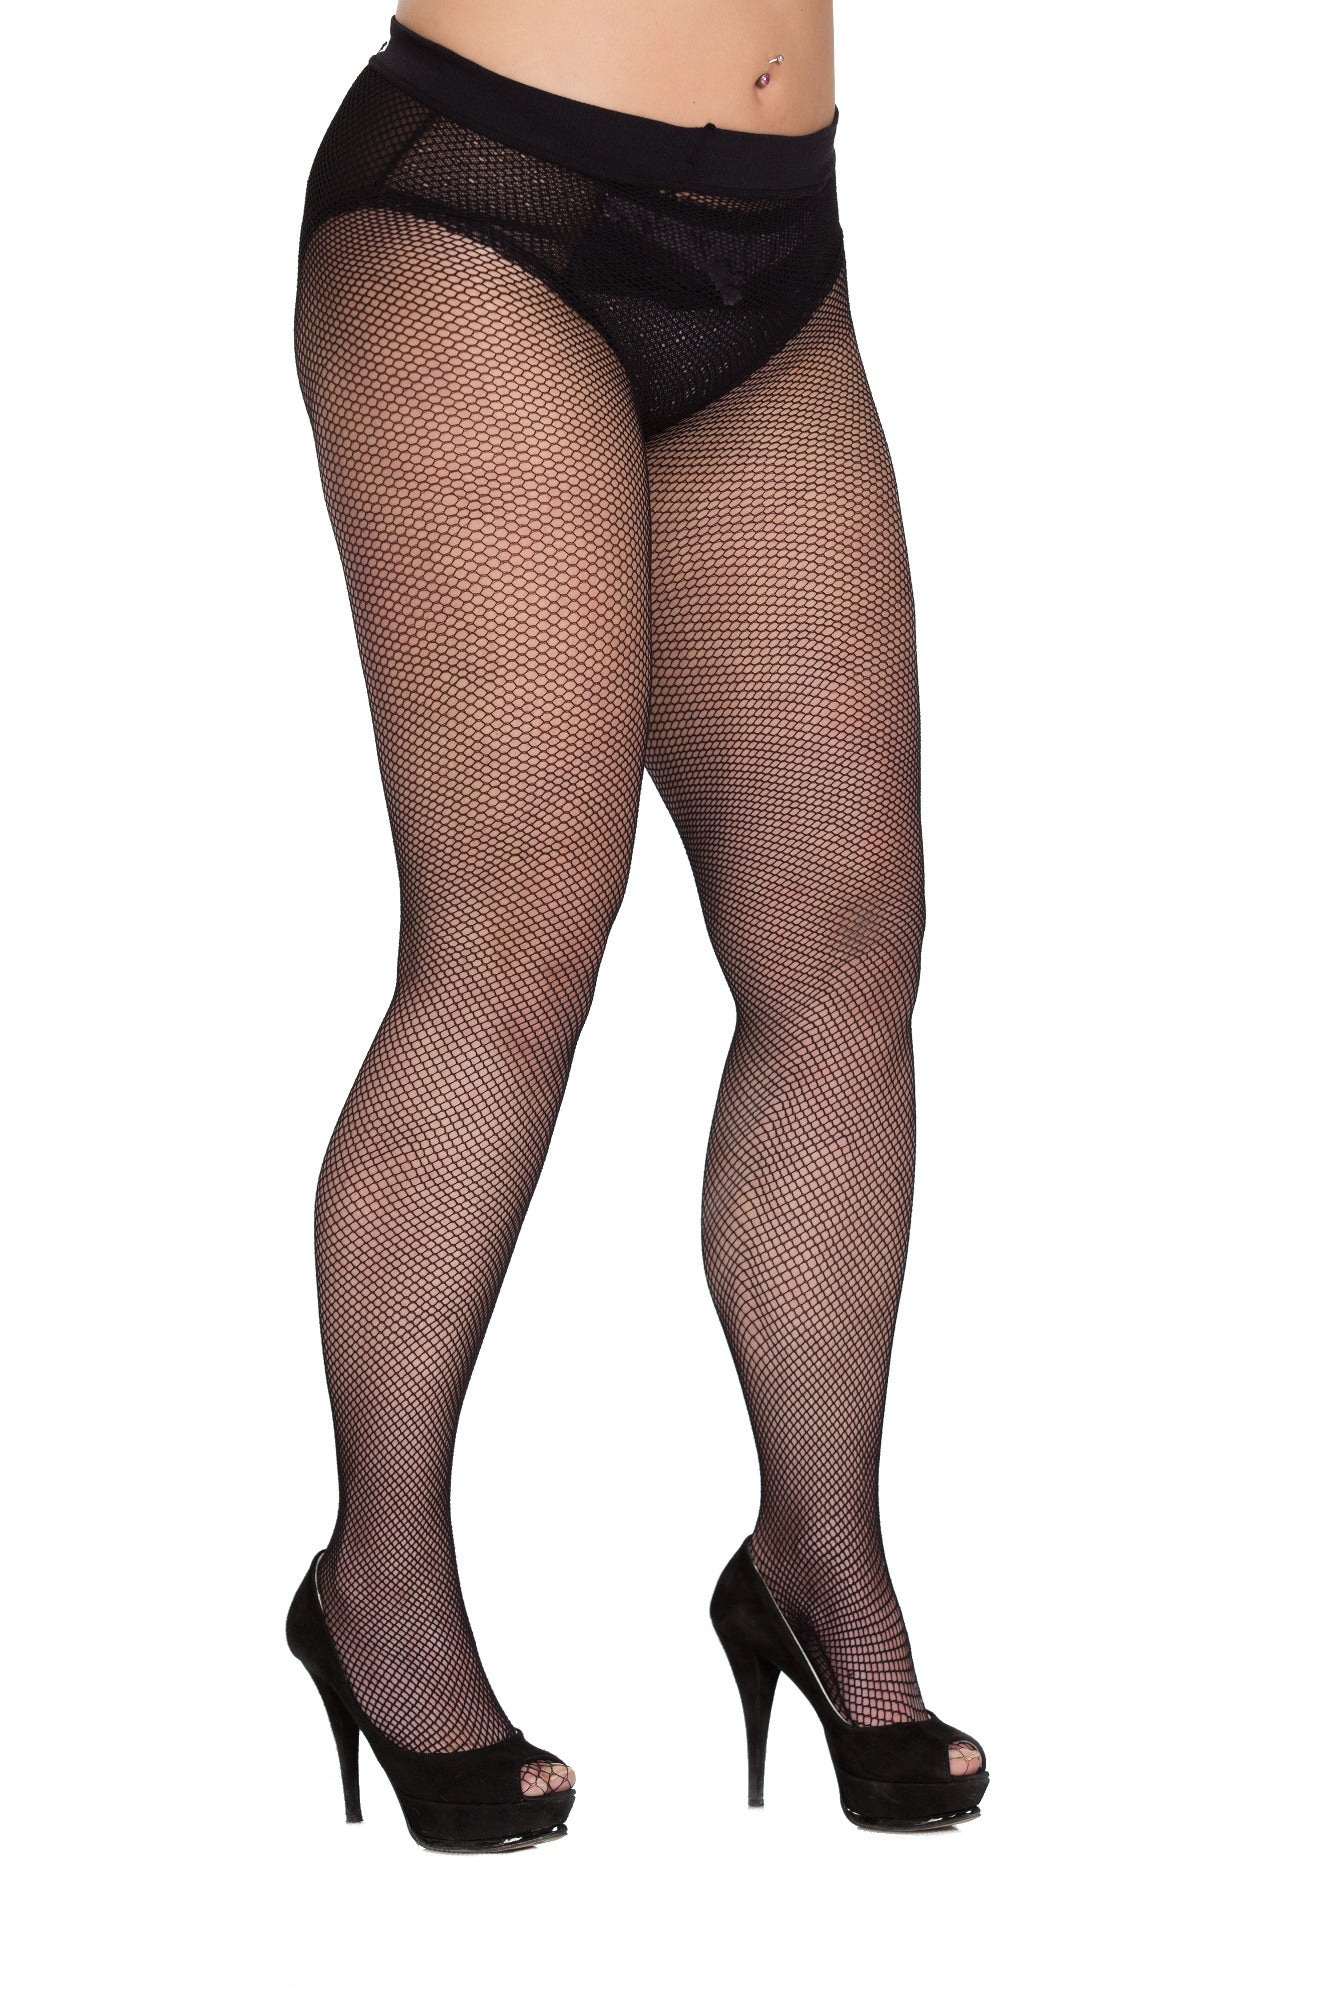 fa75ffb75f3 PLUS SIZE BLACK SEXY FISHNET TIGHTS 4XL 5XL